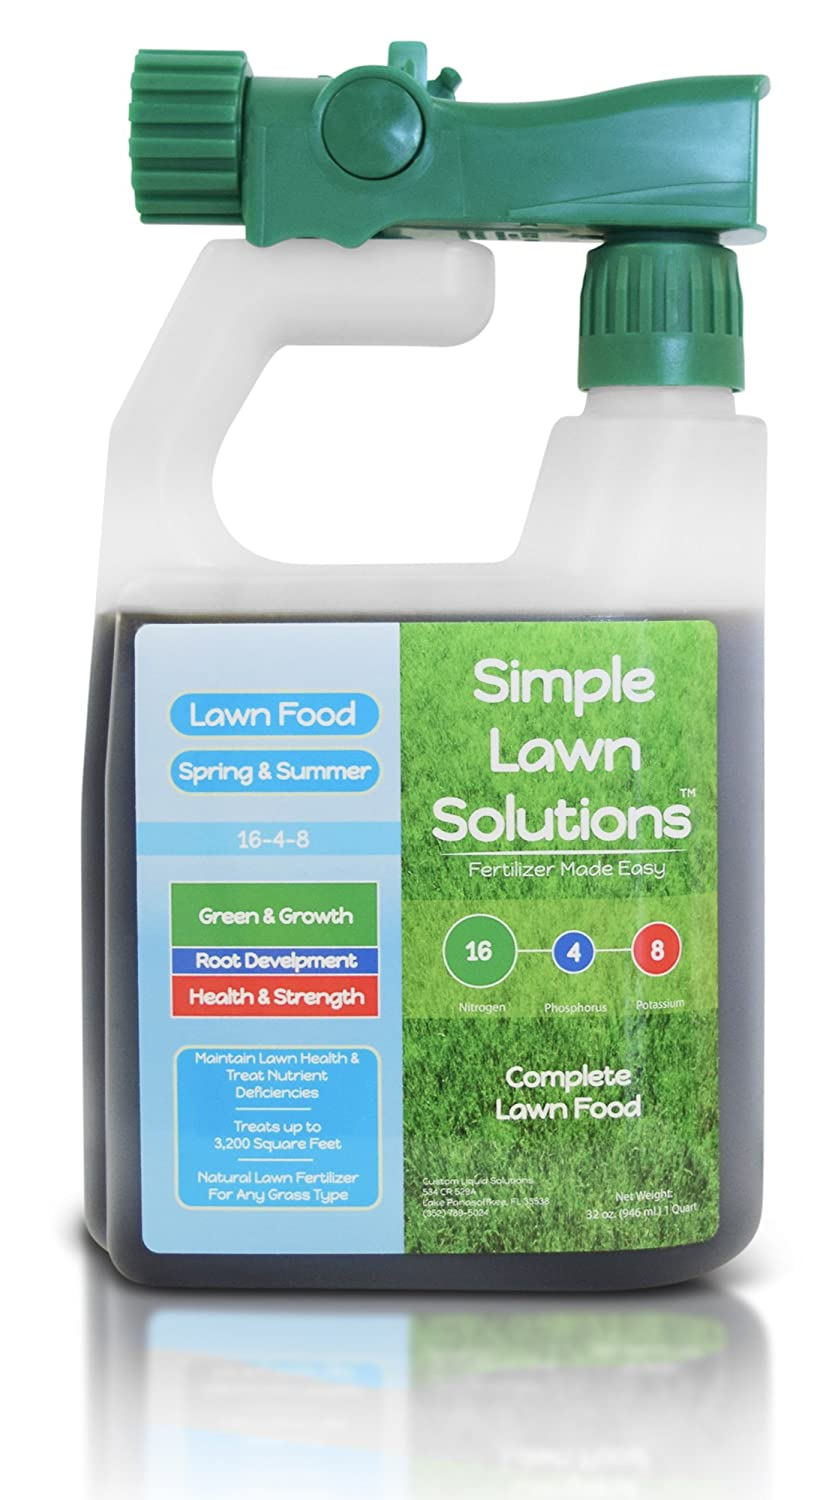 Advanced 16-4-8 Balanced NPK - Lawn Food Natural Liquid Fertilizer - Spring & Summer Concentrated Spray - Any Grass Type - Simple Lawn Solutions (32 Ounce)